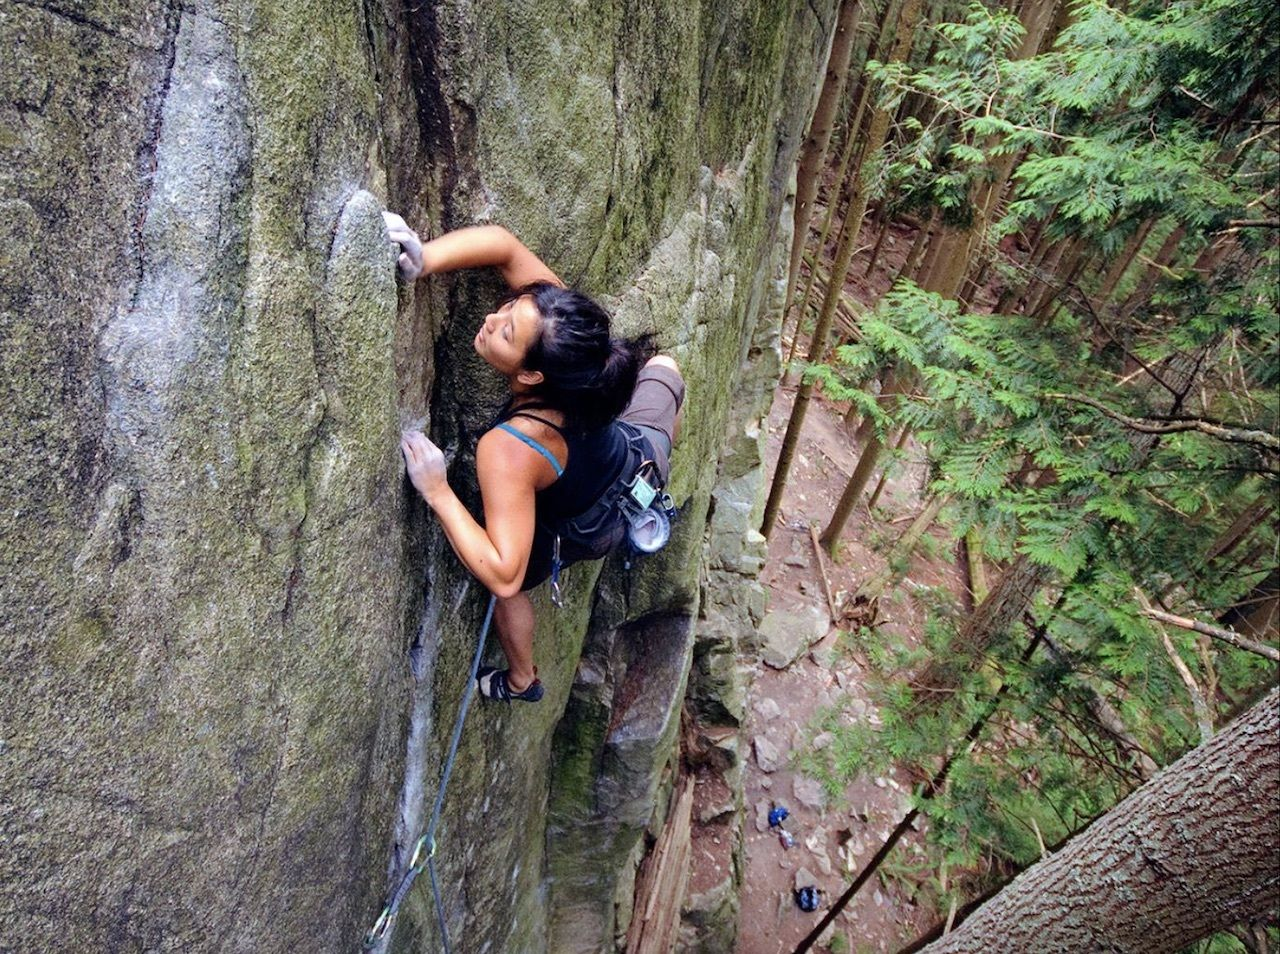 Lenise Lewis on Lubo (5.11a). Sully's Hangout, North Vancouver,  British Columbia climbing